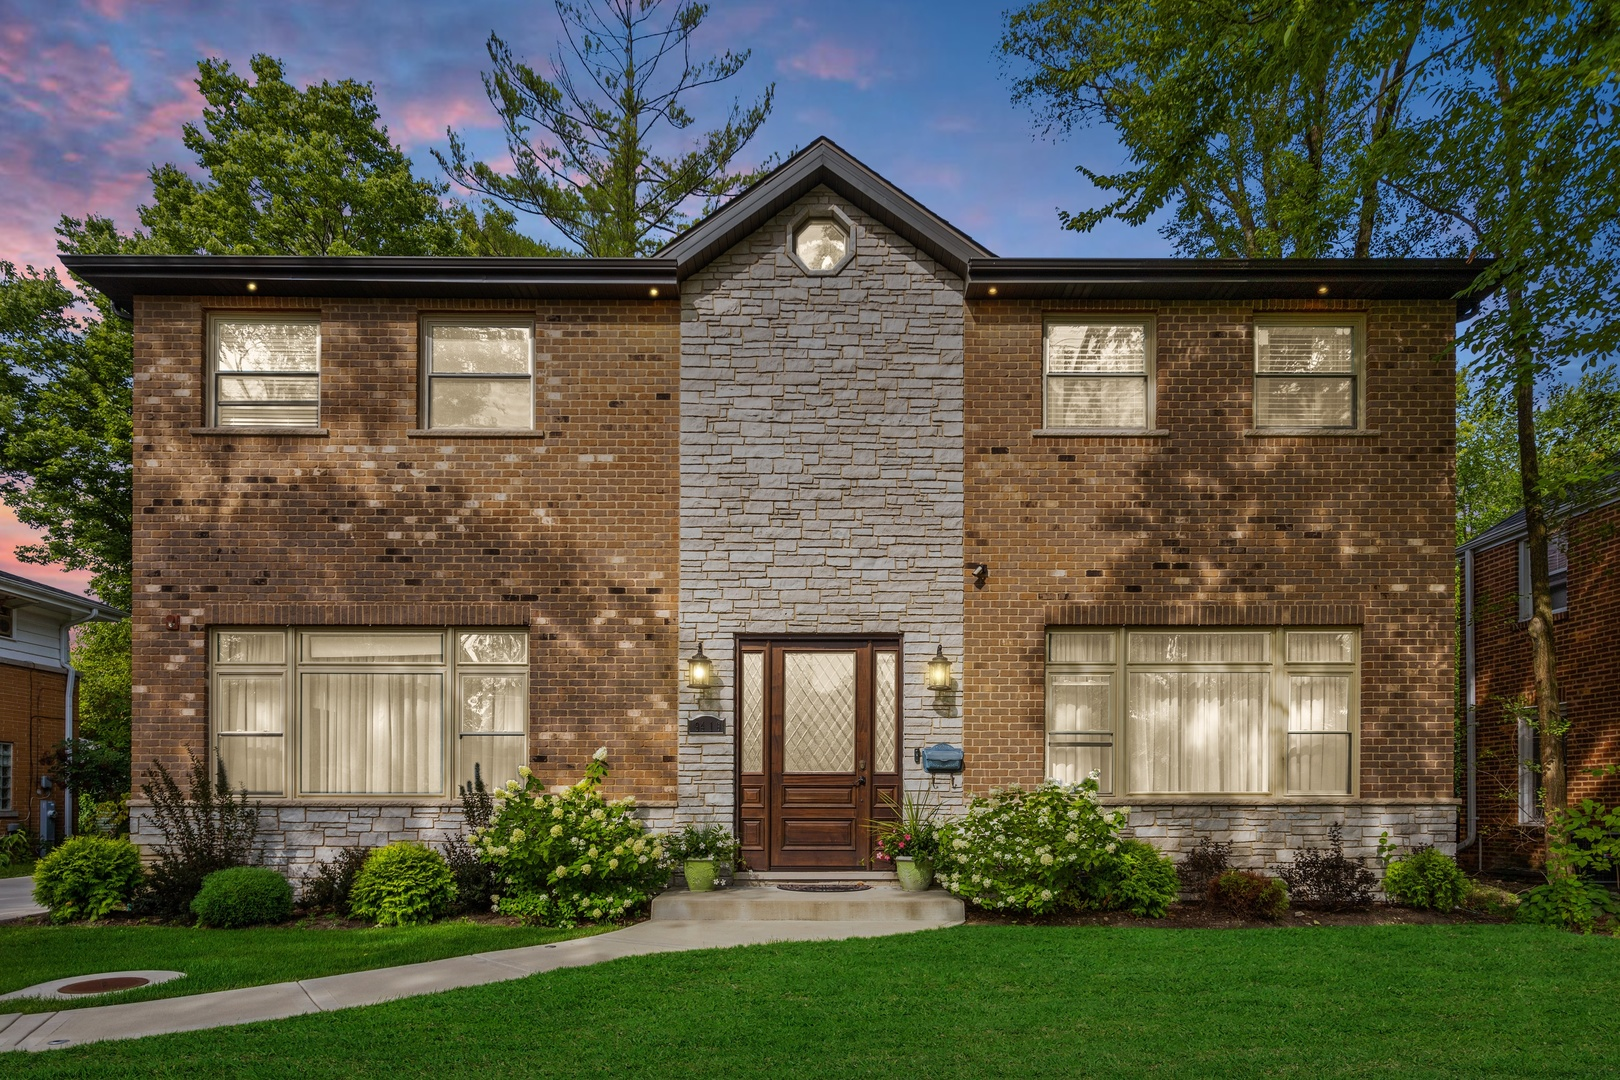 9410 Karlov Avenue, Skokie, Illinois